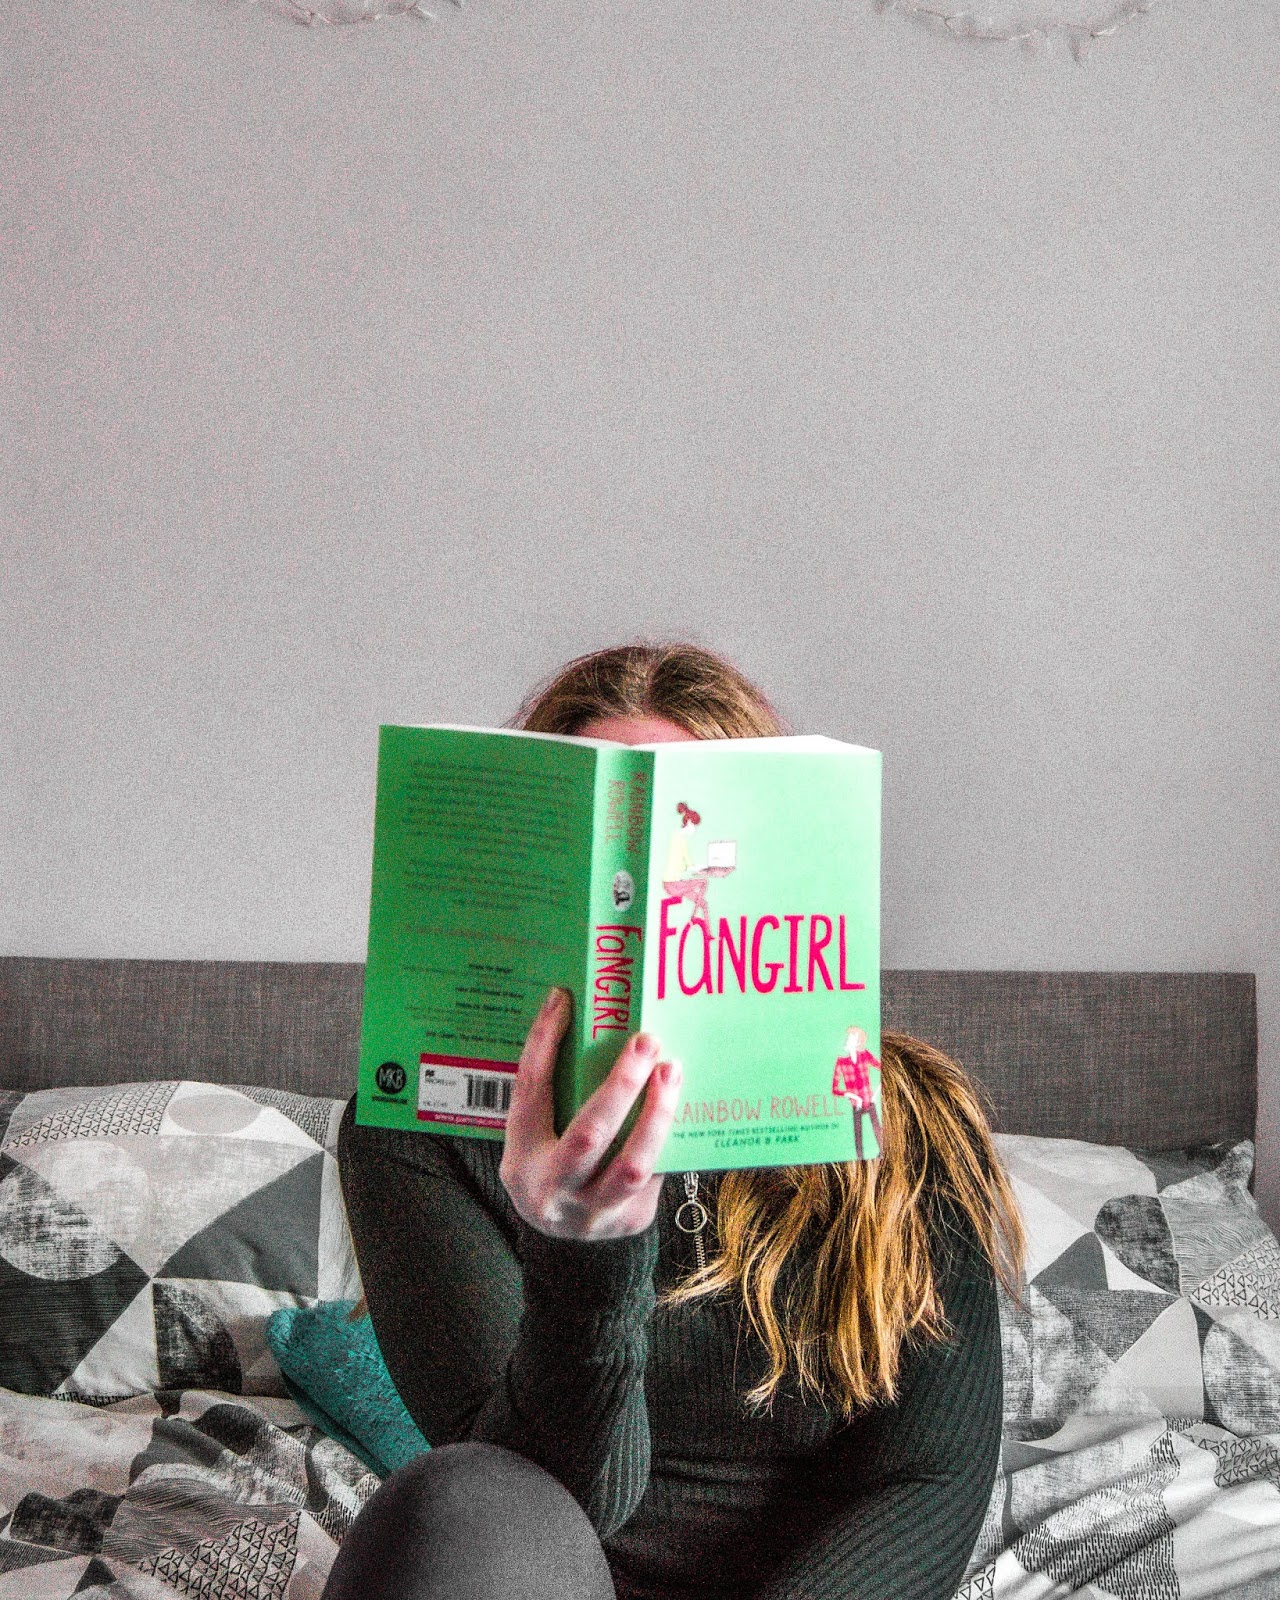 a female sat on a bed facing the camera, holding the book Fangirl in front of her face